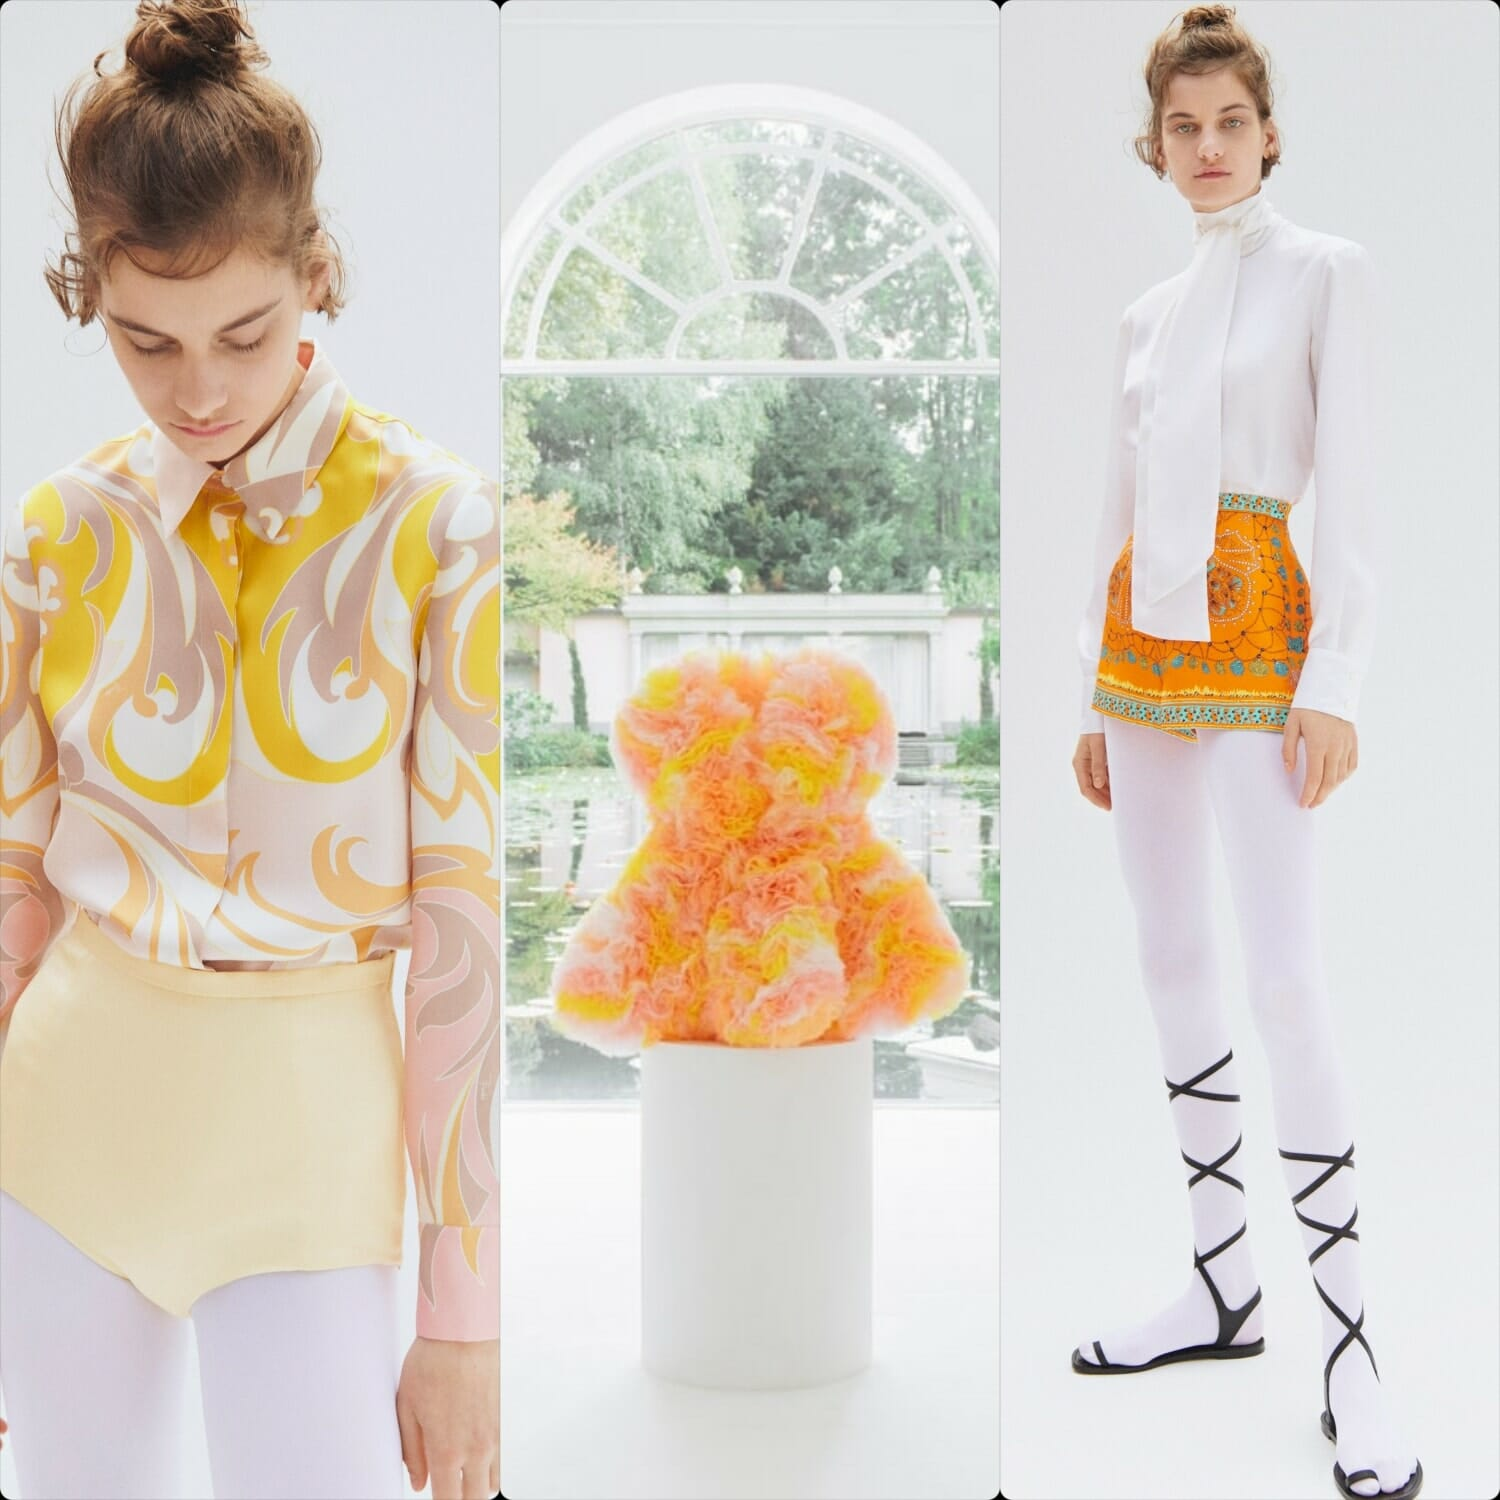 Emilio Pucci Spring Summer 2021 - Capsule Tomo Koizumi. RUNWAY MAGAZINE ® Collections. RUNWAY NOW / RUNWAY NEW